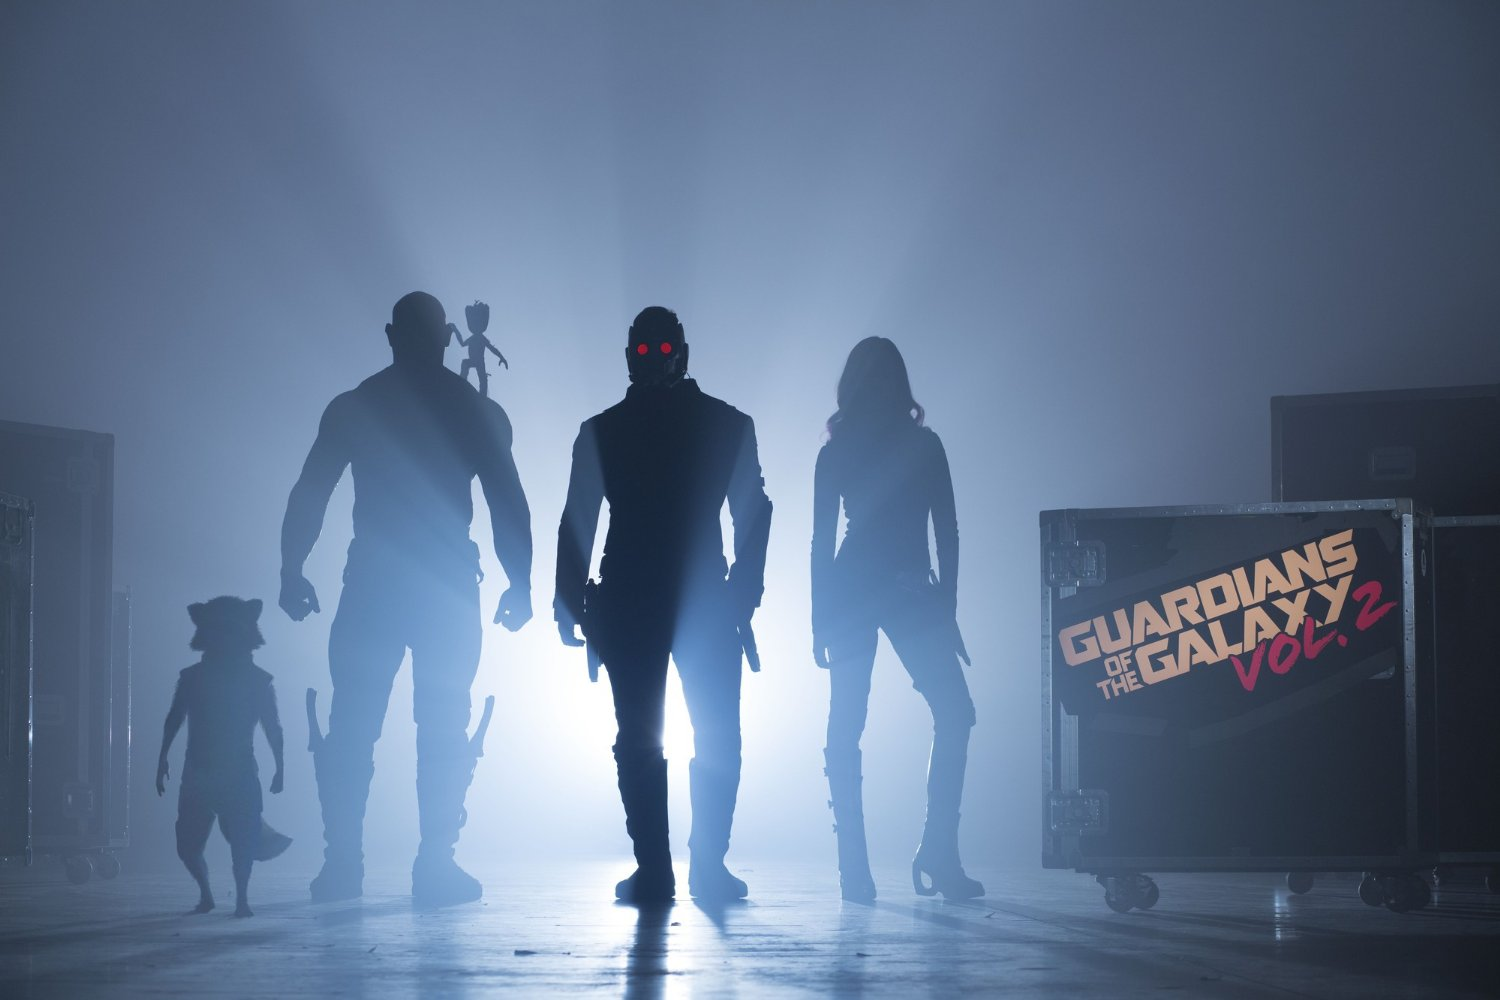 Guardians of the Galaxy Rocket, Drax, Baby Groot, Star-Lord, Gamora